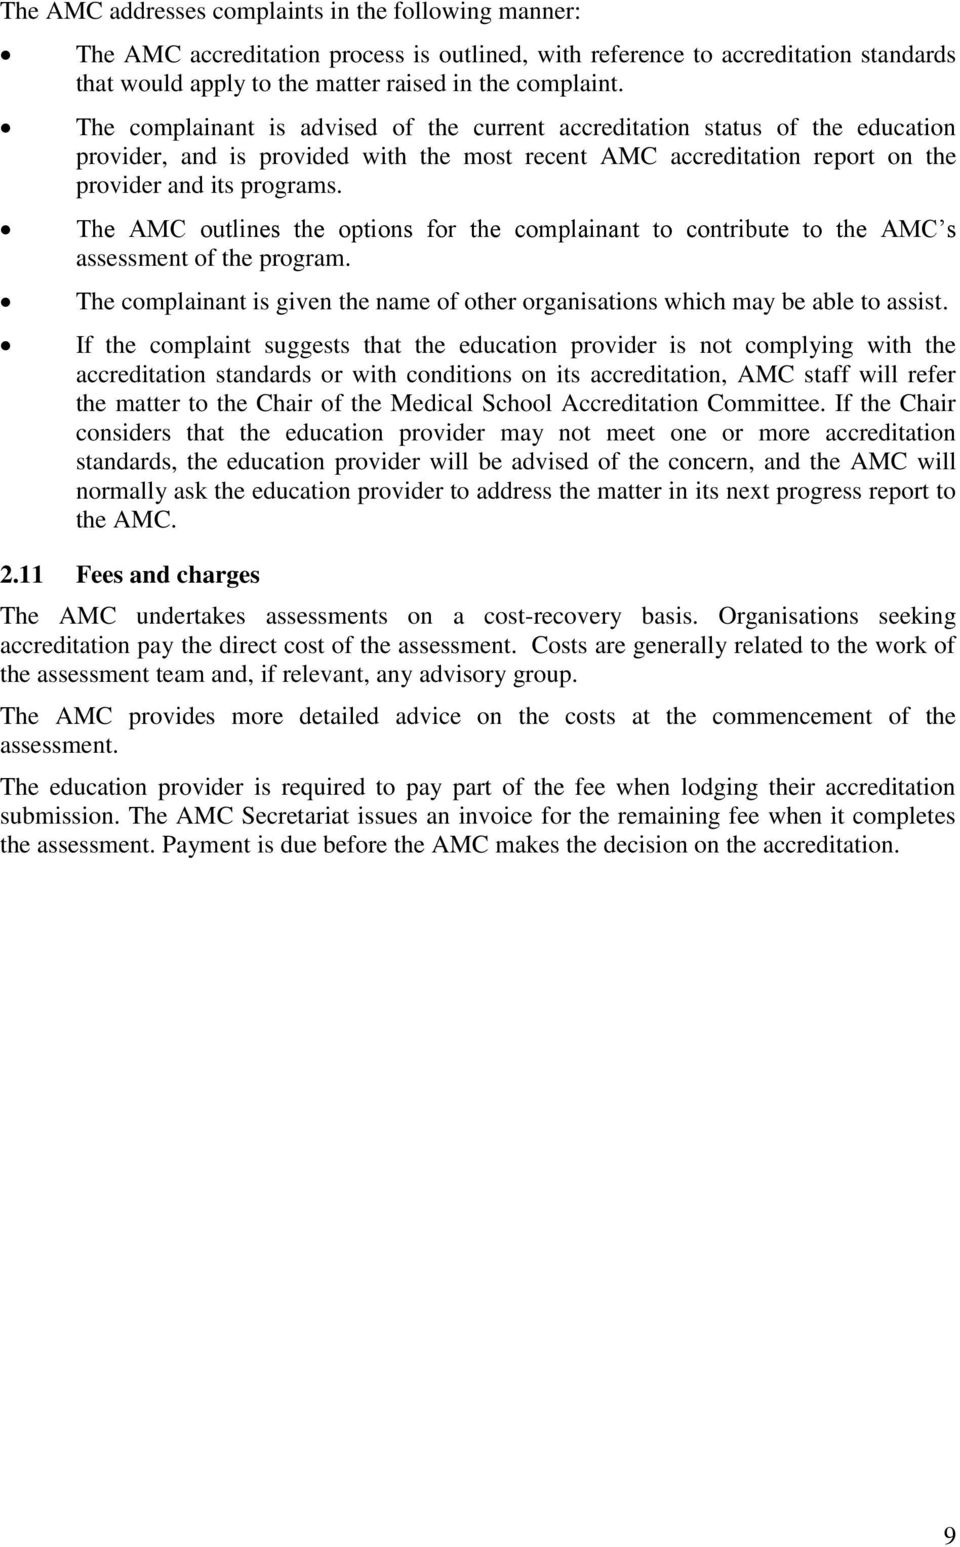 The AMC outlines the options for the complainant to contribute to the AMC s assessment of the program. The complainant is given the name of other organisations which may be able to assist.